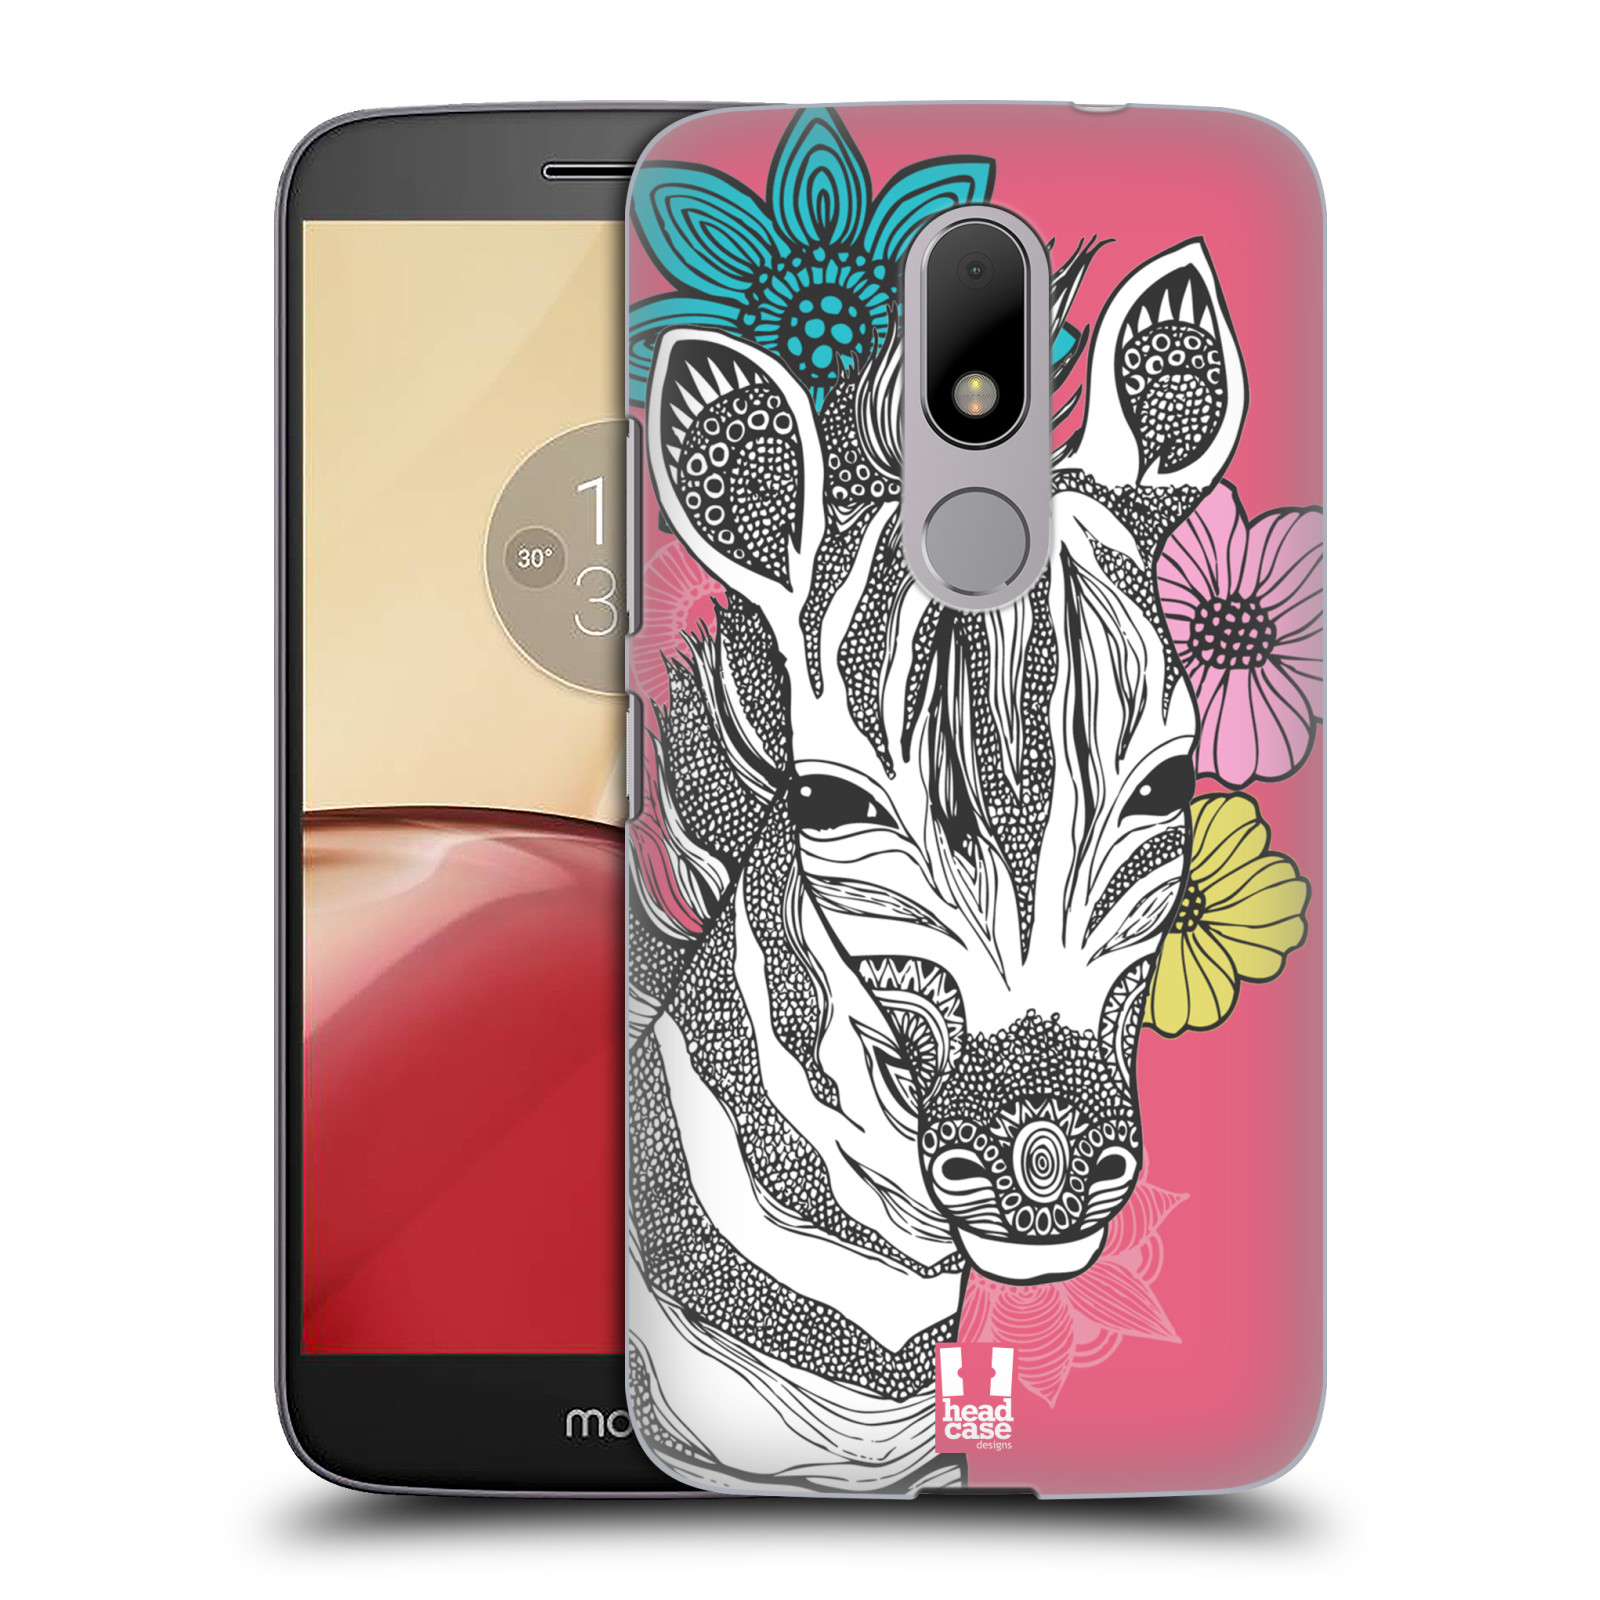 HEAD-CASE-DESIGNS-FANCIFUL-INTRICACIES-HARD-BACK-CASE-FOR-MOTOROLA-MOTO-M